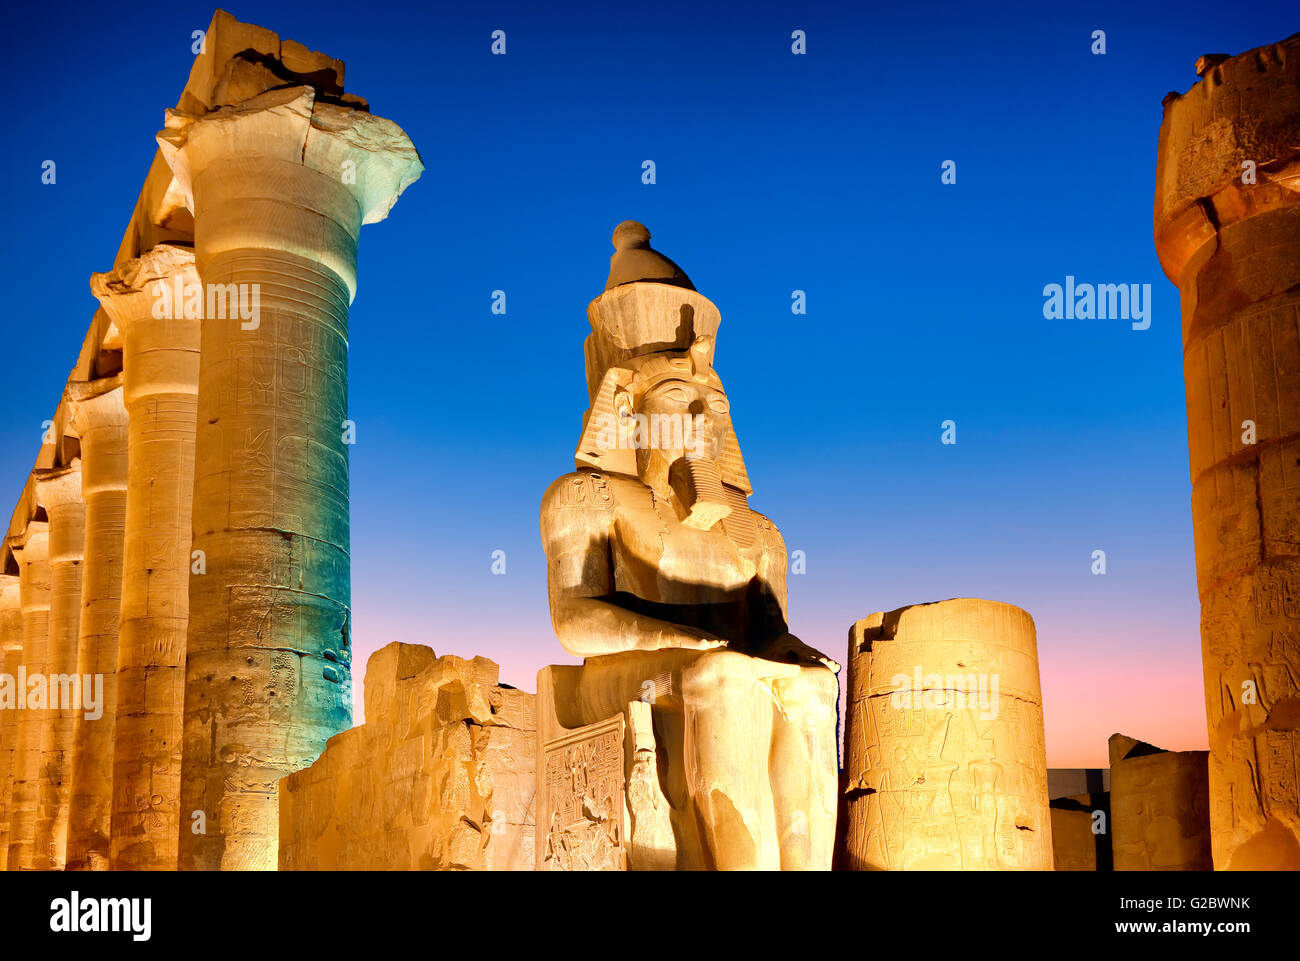 Statue of the pharaoh Ramesses II in Luxor temple at night - Stock Image